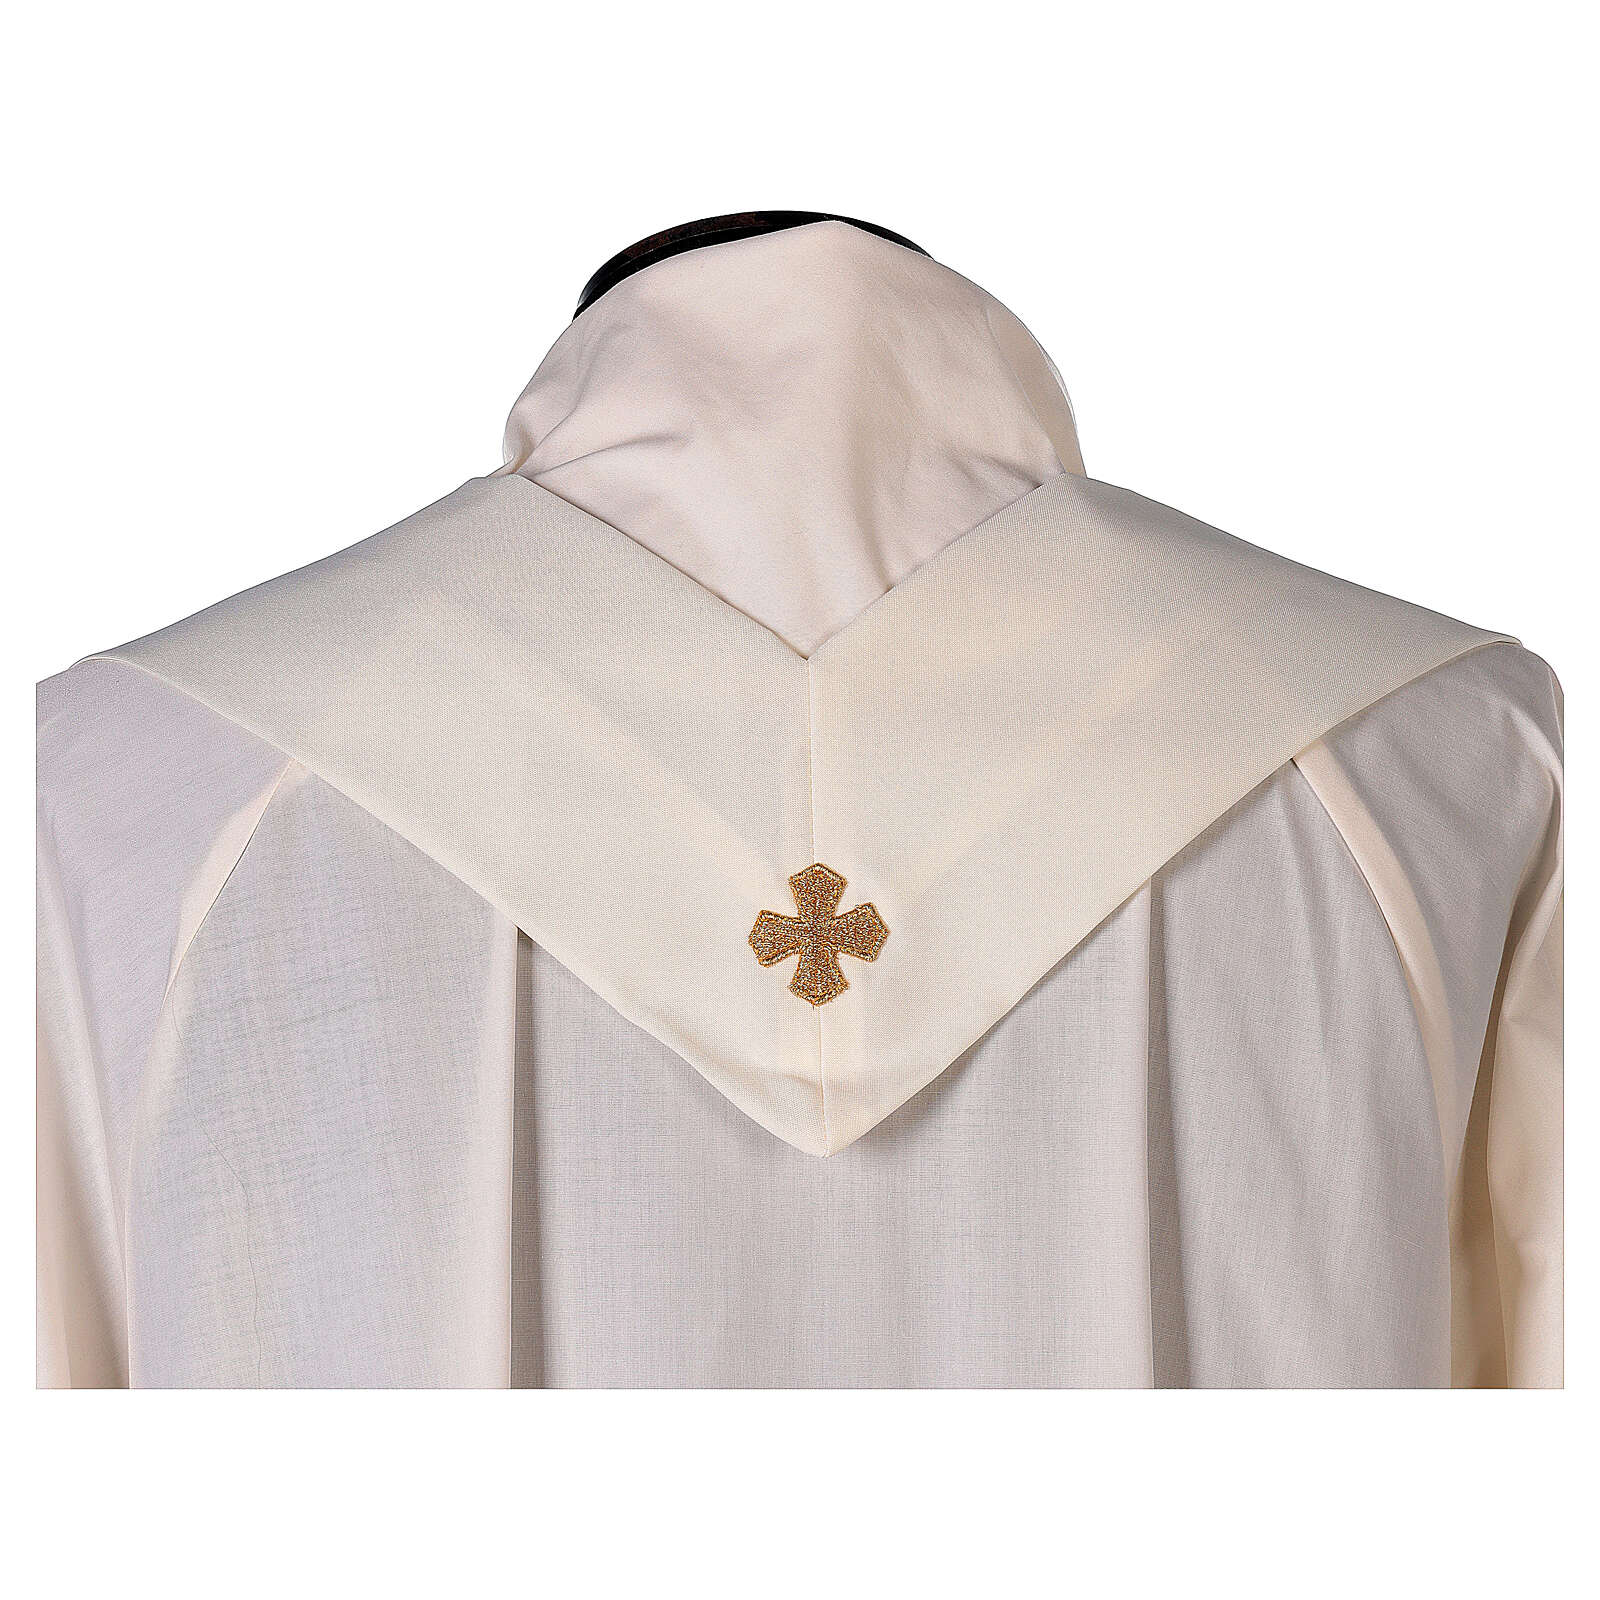 Chasuble with satin orphrey on front and back, Vatican fabric 4